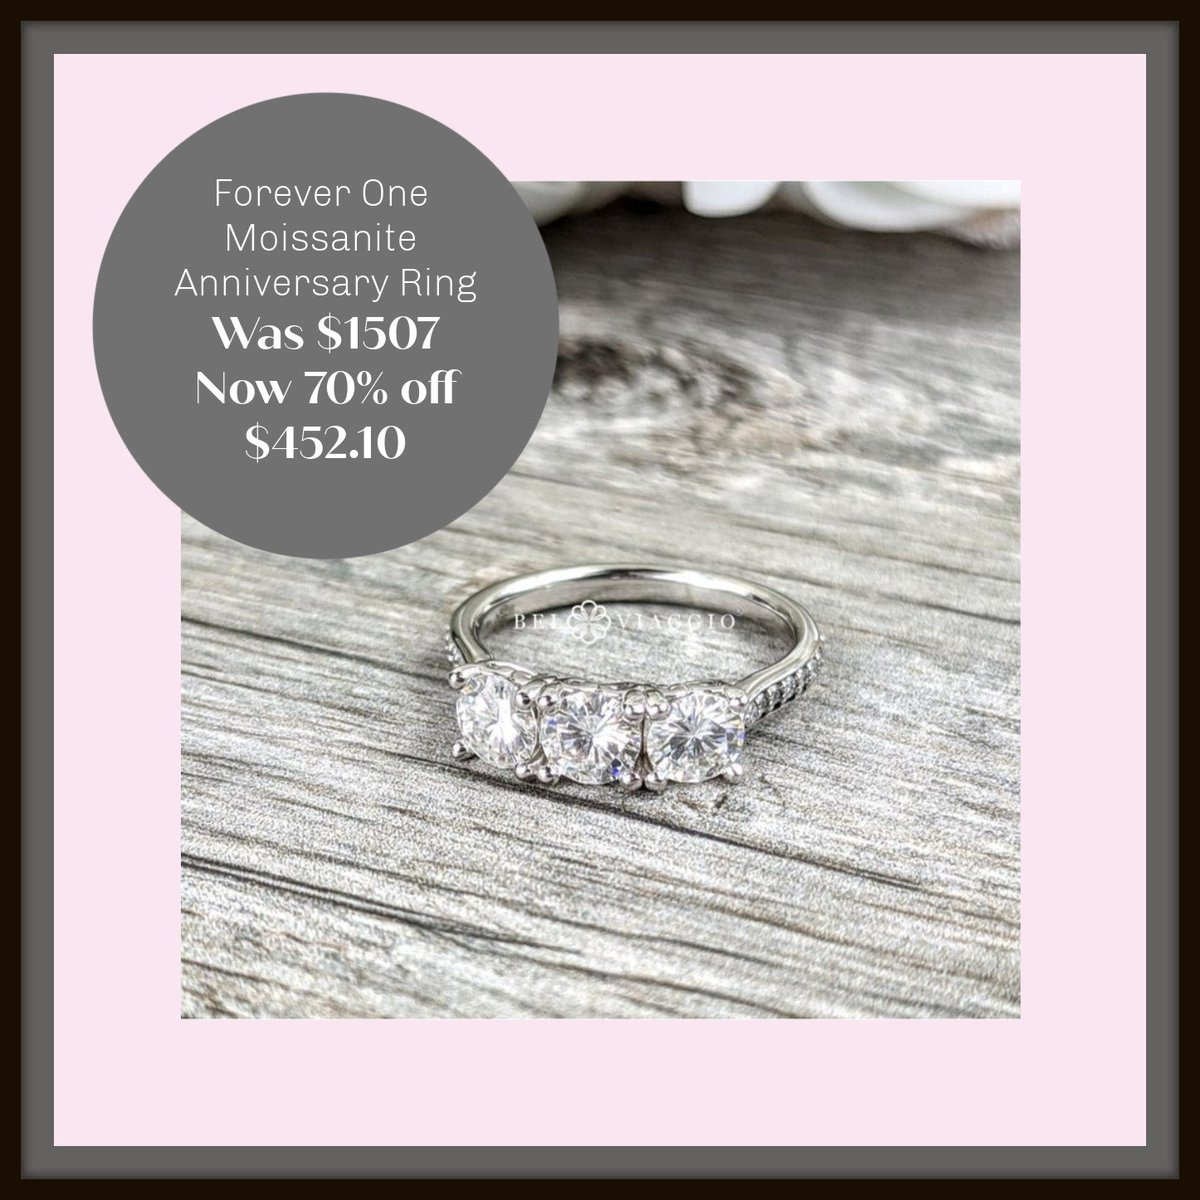 Forever One Moissanite Anniversary Ring, 1.66ctw. Would make an wonderful Mother's Day gift! #mothersdaygift #mother #instajewelry#anniversary #anniversarygift #jewelryonetsy #jewelryonsale https://www.etsy.com/listing/642386539/moissanite-anniversary-ring-ready-to…pic.twitter.com/VbGBxvE5xl